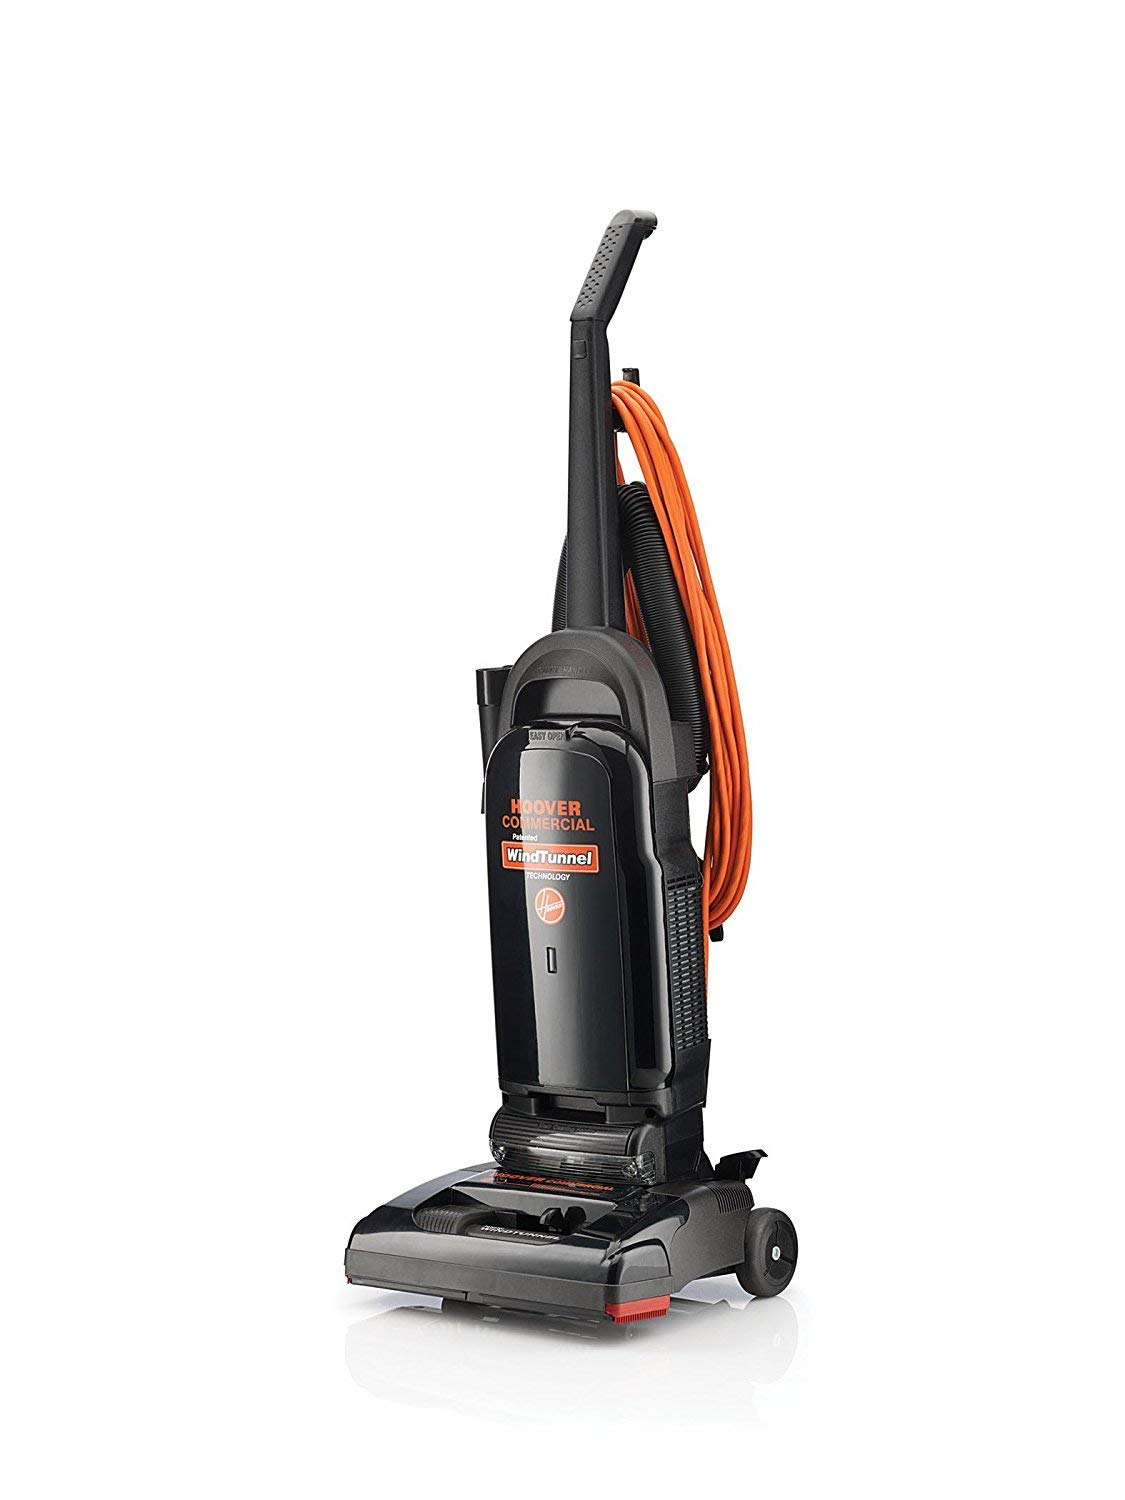 Hoover Commercial WindTunnel 13'' Bagged Upright Vacuum C1703900 (3 Units)